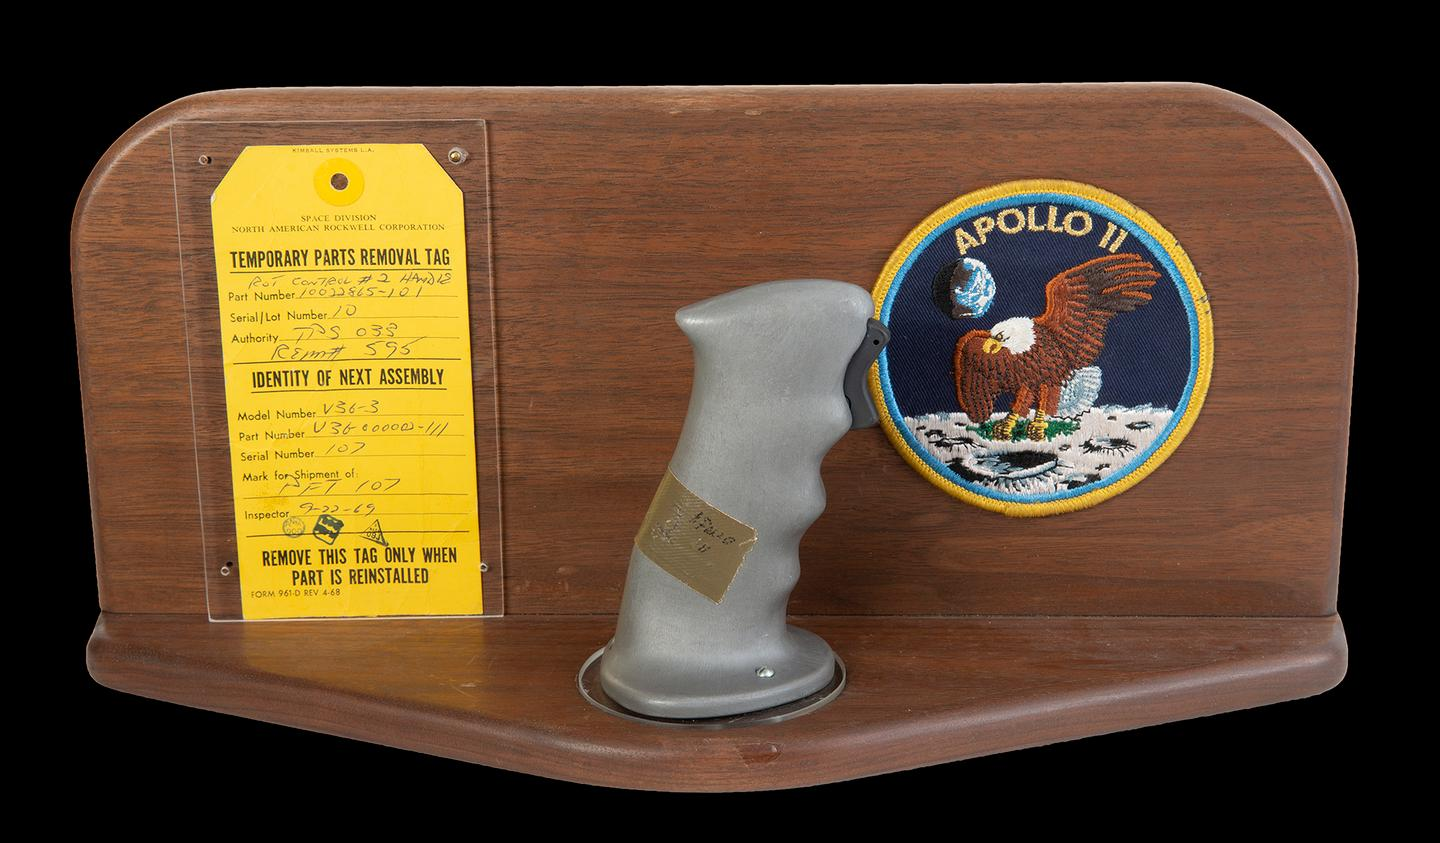 $370,000 | Neil Armstrong's Apollo 11 Control Joystick | Julien's Auctions | Estimate: $100,000 - $200,000 | 18 July 2020 | The original rotational attitude control stick (aka rotation hand controller) from the Apollo 11 command module Columbia in 1969. This control handle, located near the right hand of astronaut and mission commander Neil Armstrong (positioned in the left couch of the command module) allowed navigation of the spacecraft's attitude using roll, pitch, and yaw adjustments. The control stick is fitted with a trigger switch for activating the headset microphone. Included is a wooden display mount with an Apollo 11 mission patch and the original parts removal tag (dated September 22, 1969) with matching serial numbers and official NASA stamps. Part number 10022865-101. Serial number 10. NOTE: The provenance of this item has been corroborated by an official NASA audit report published by the Office of Inspector General in 2018.